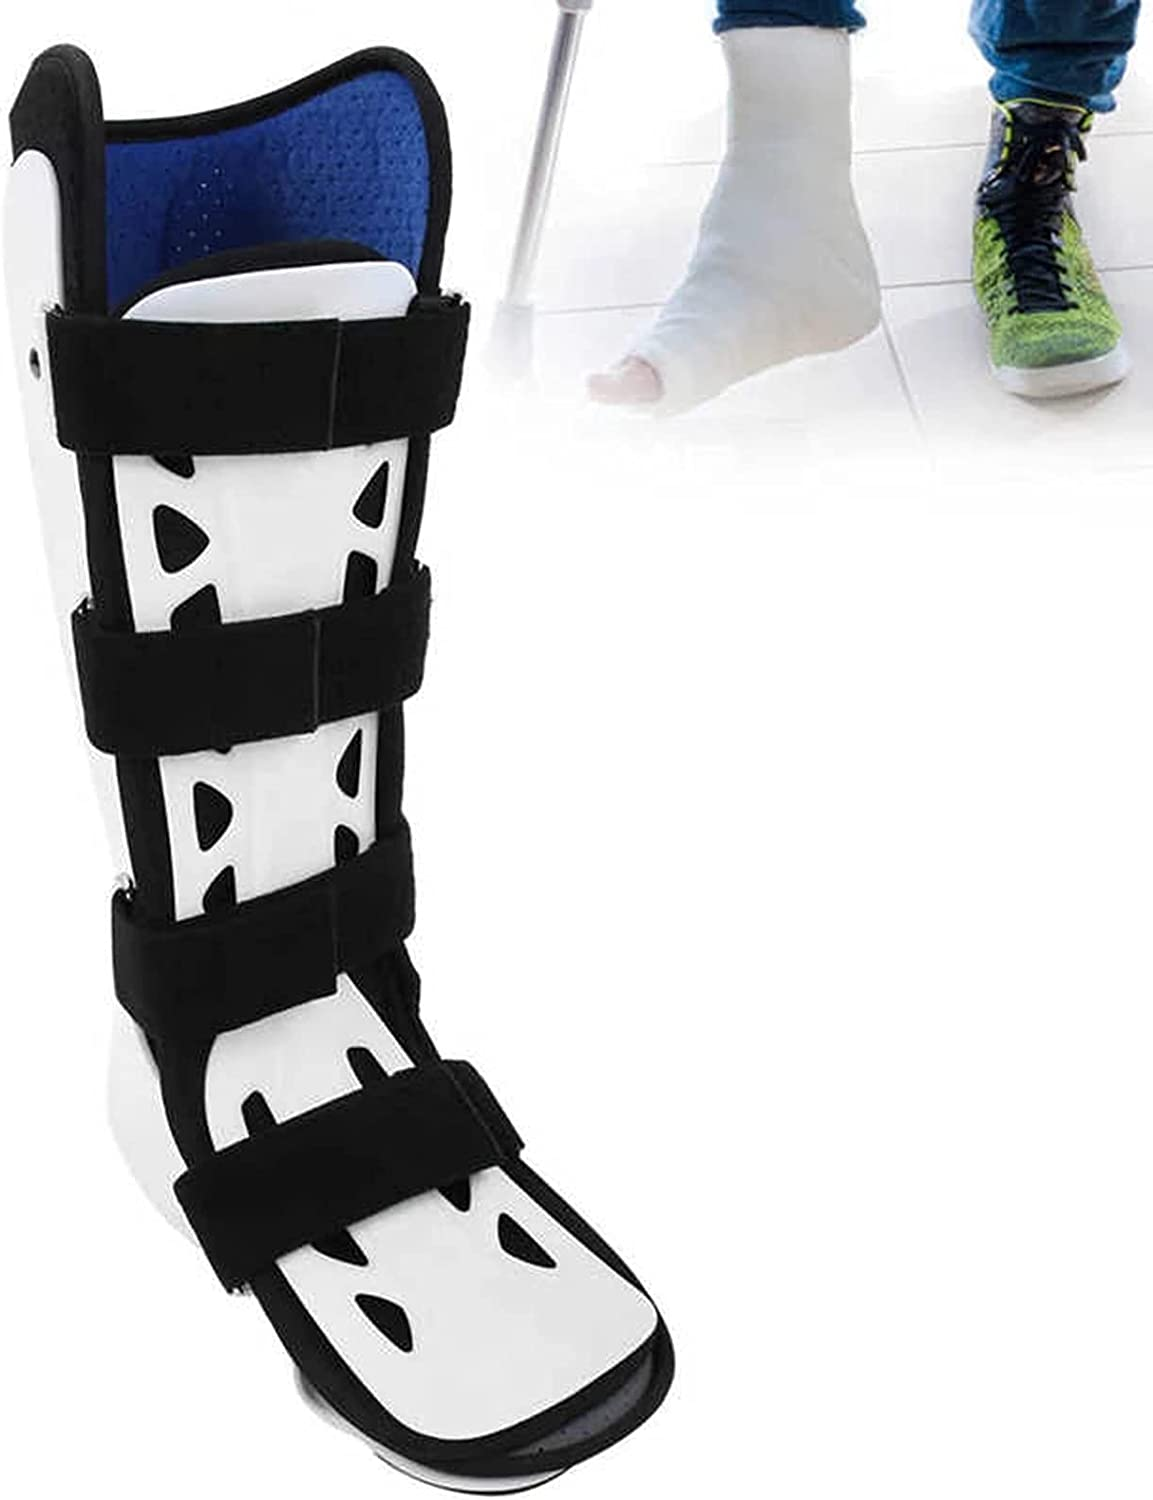 ALUCE Plantar Fasciitis Night Splint Foot Indefinitely Stabili Support Limited time trial price Arch